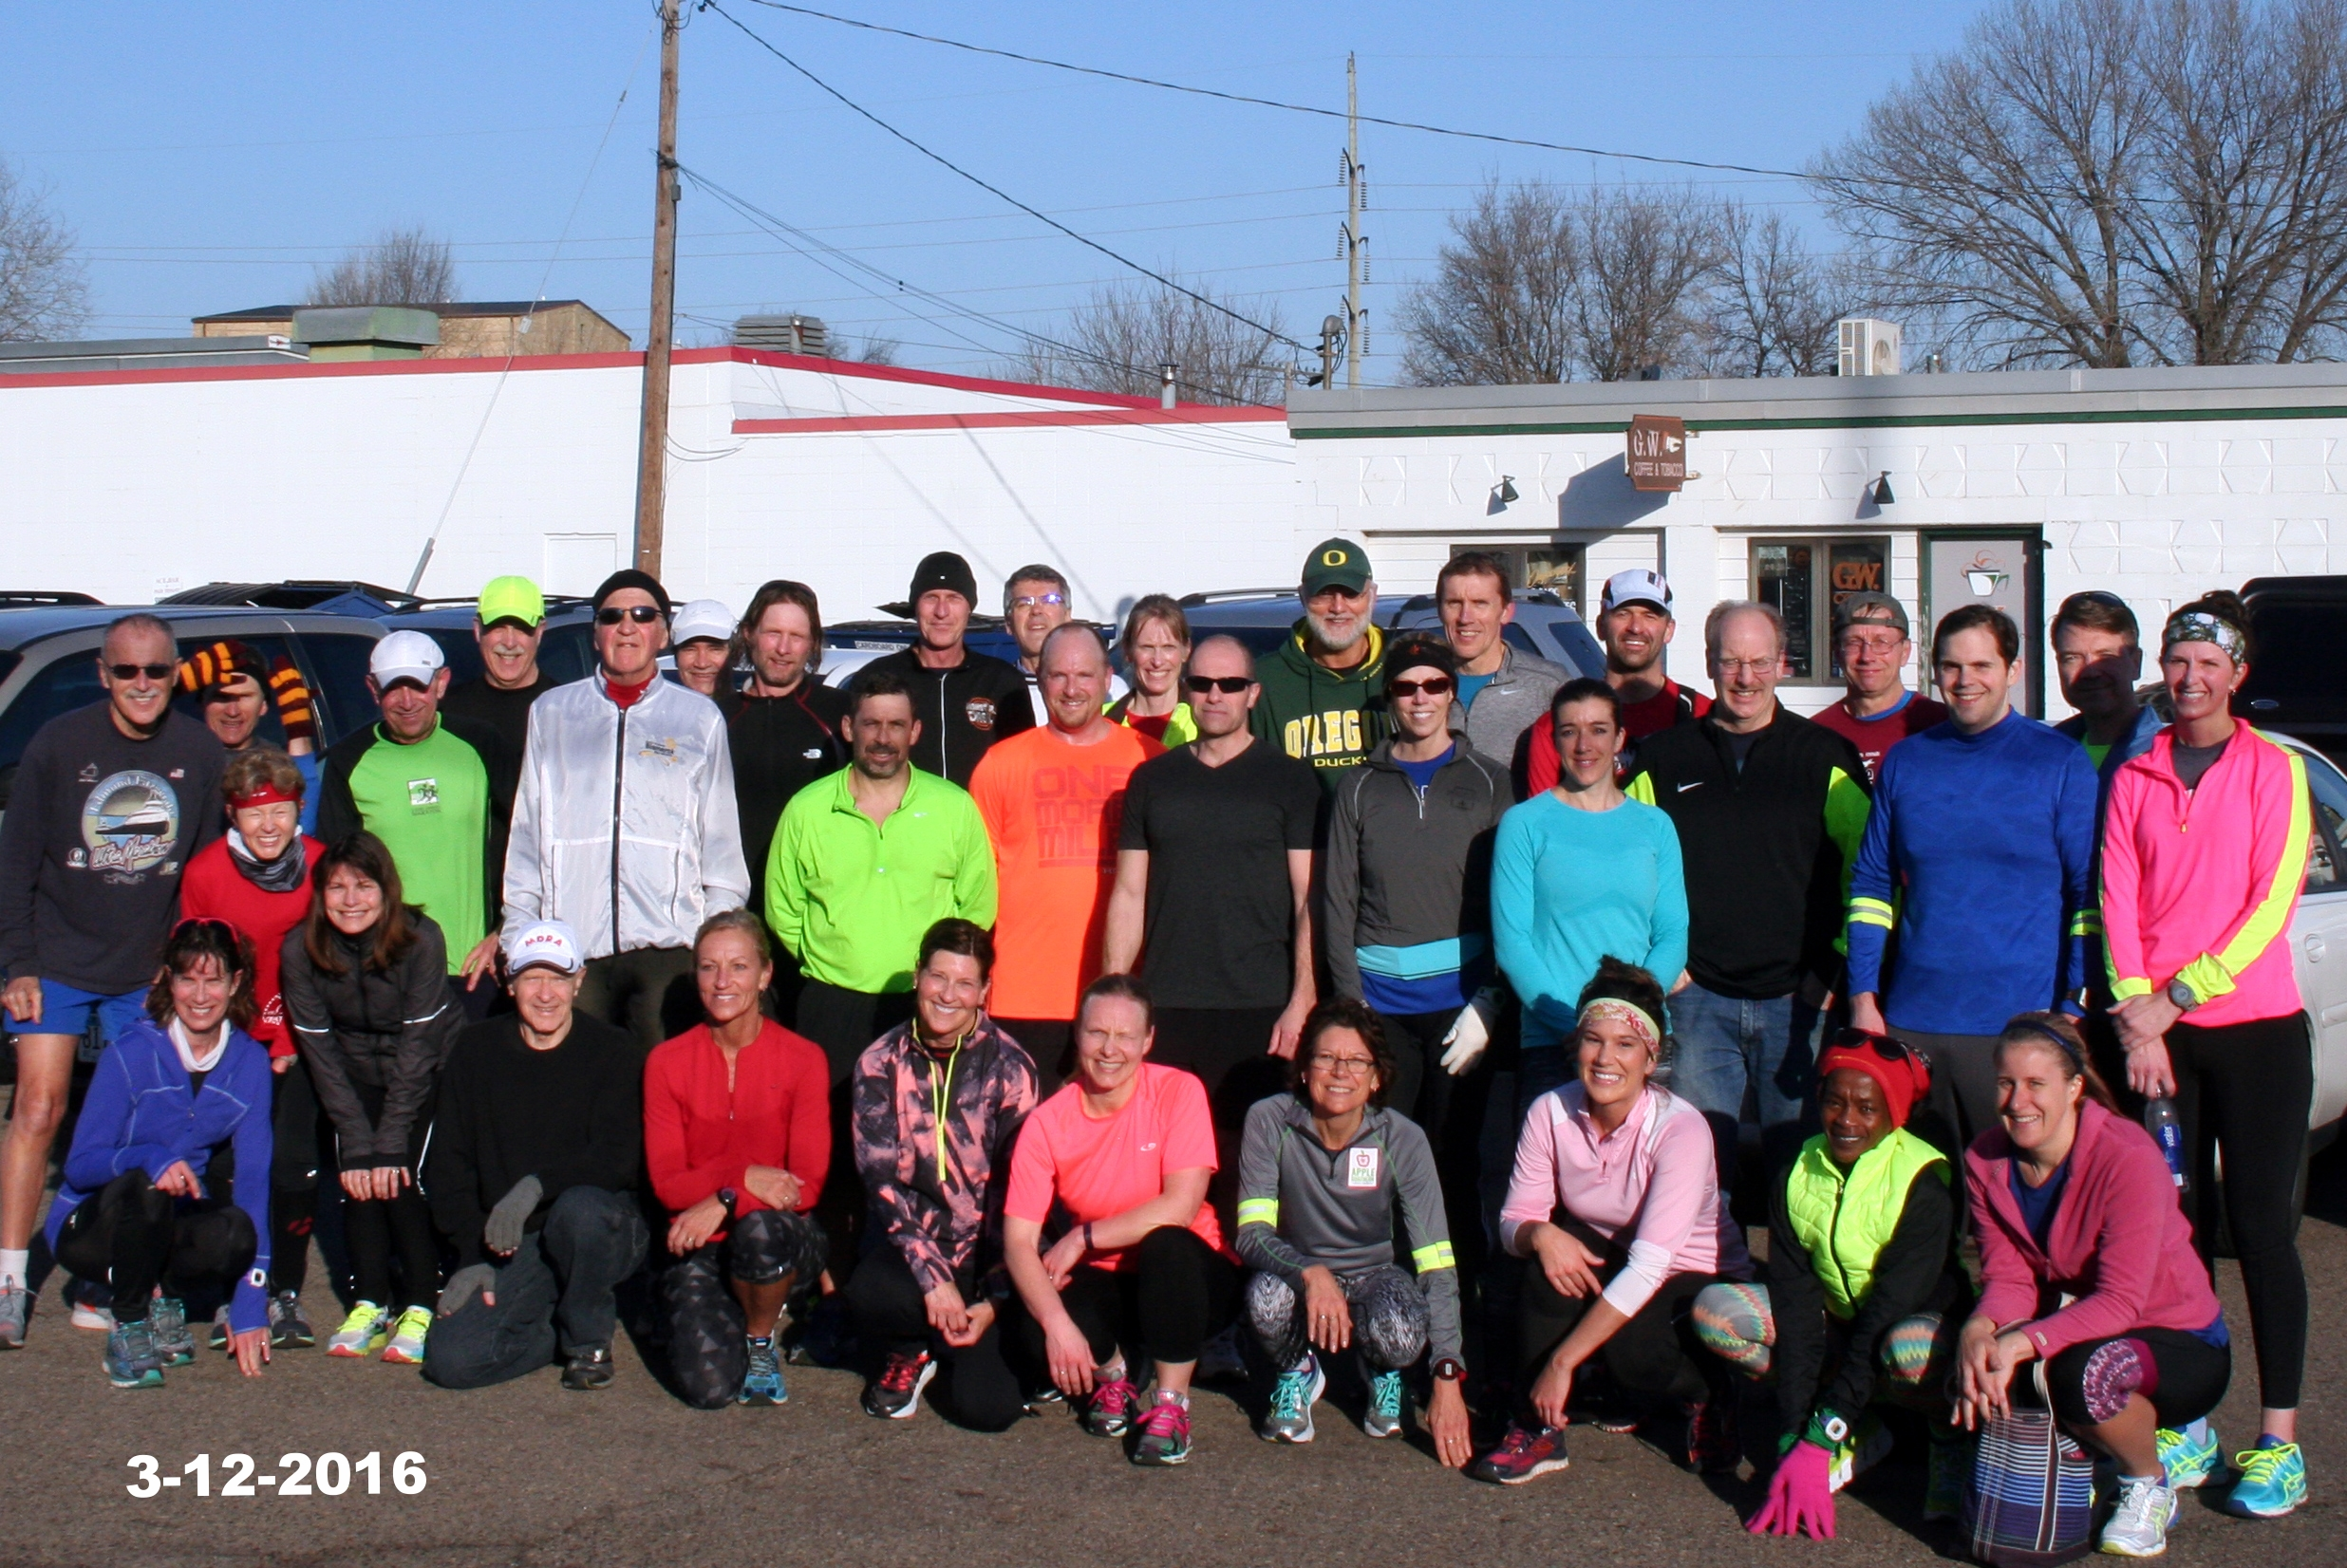 Breakfast Run 3-12-2016